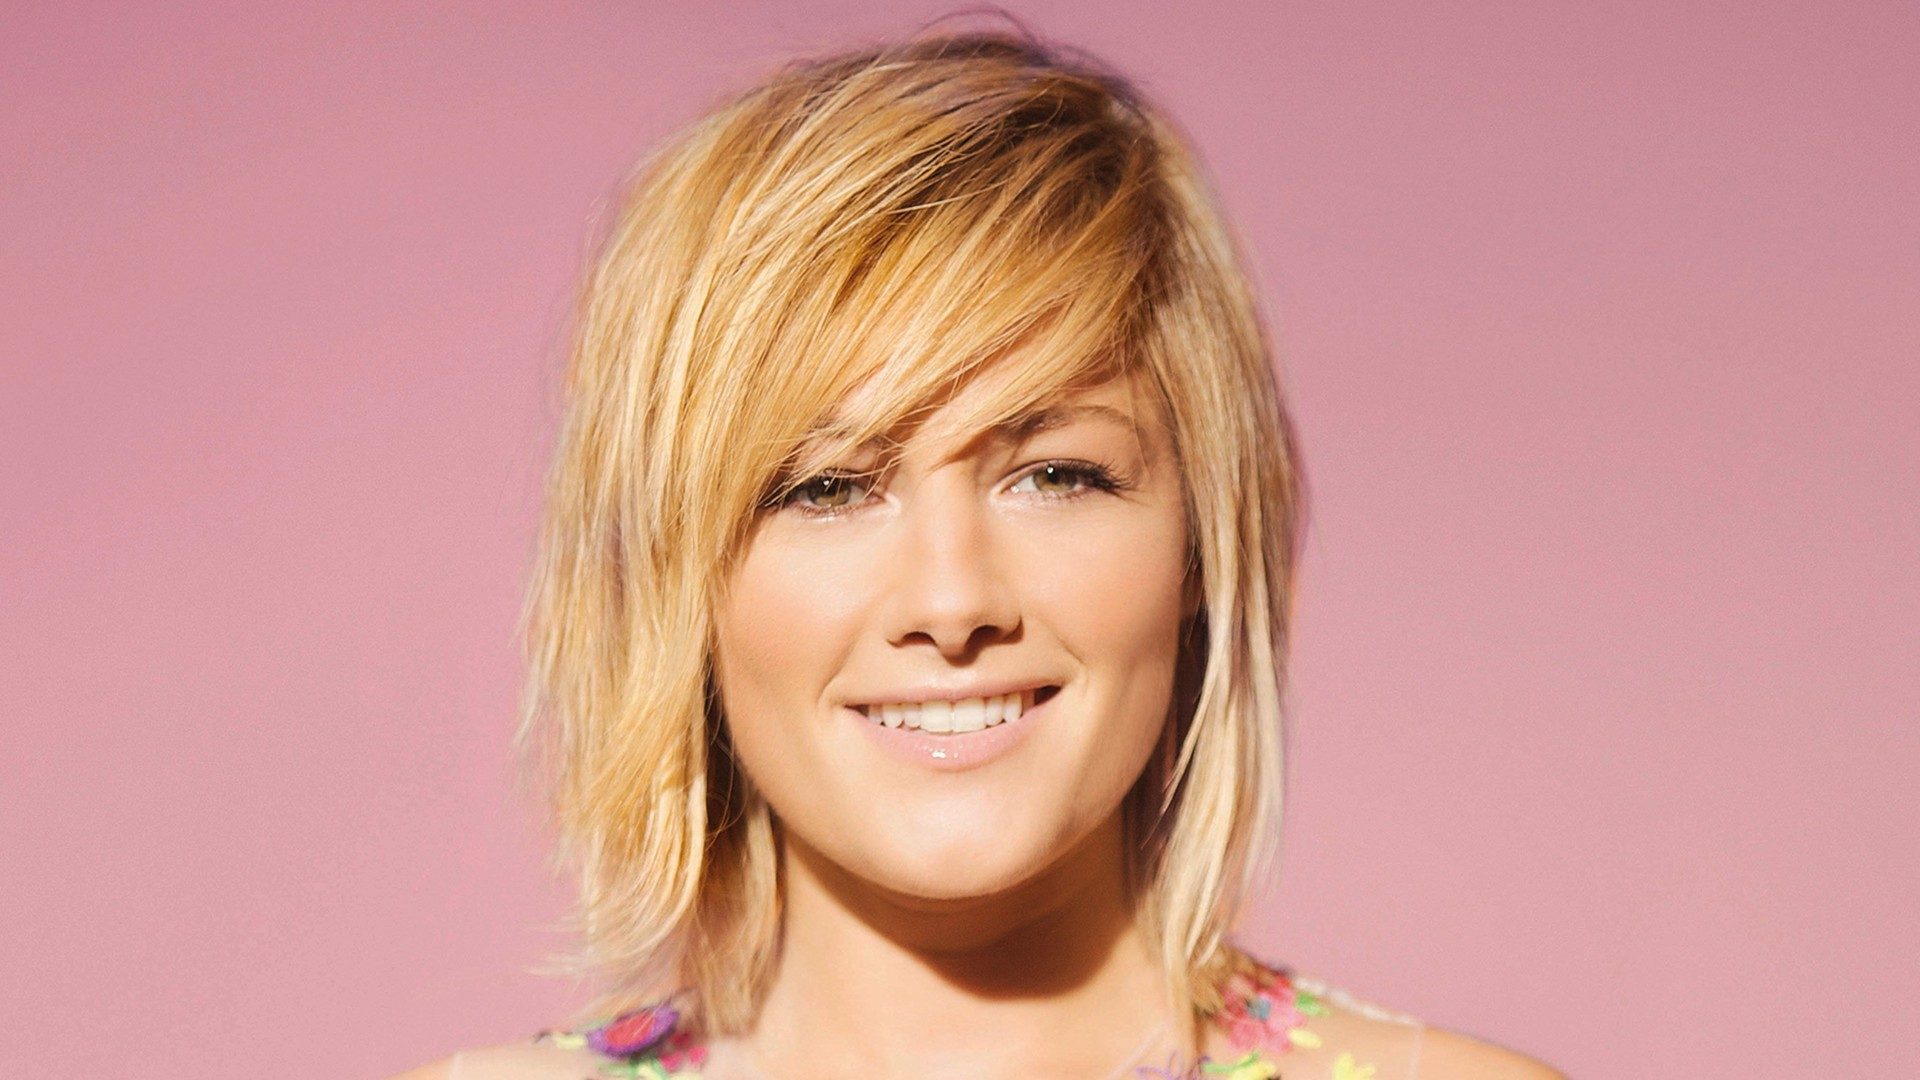 Helene Fischer Wallpapers Images Photos Pictures Backgrounds Gwen Stefani